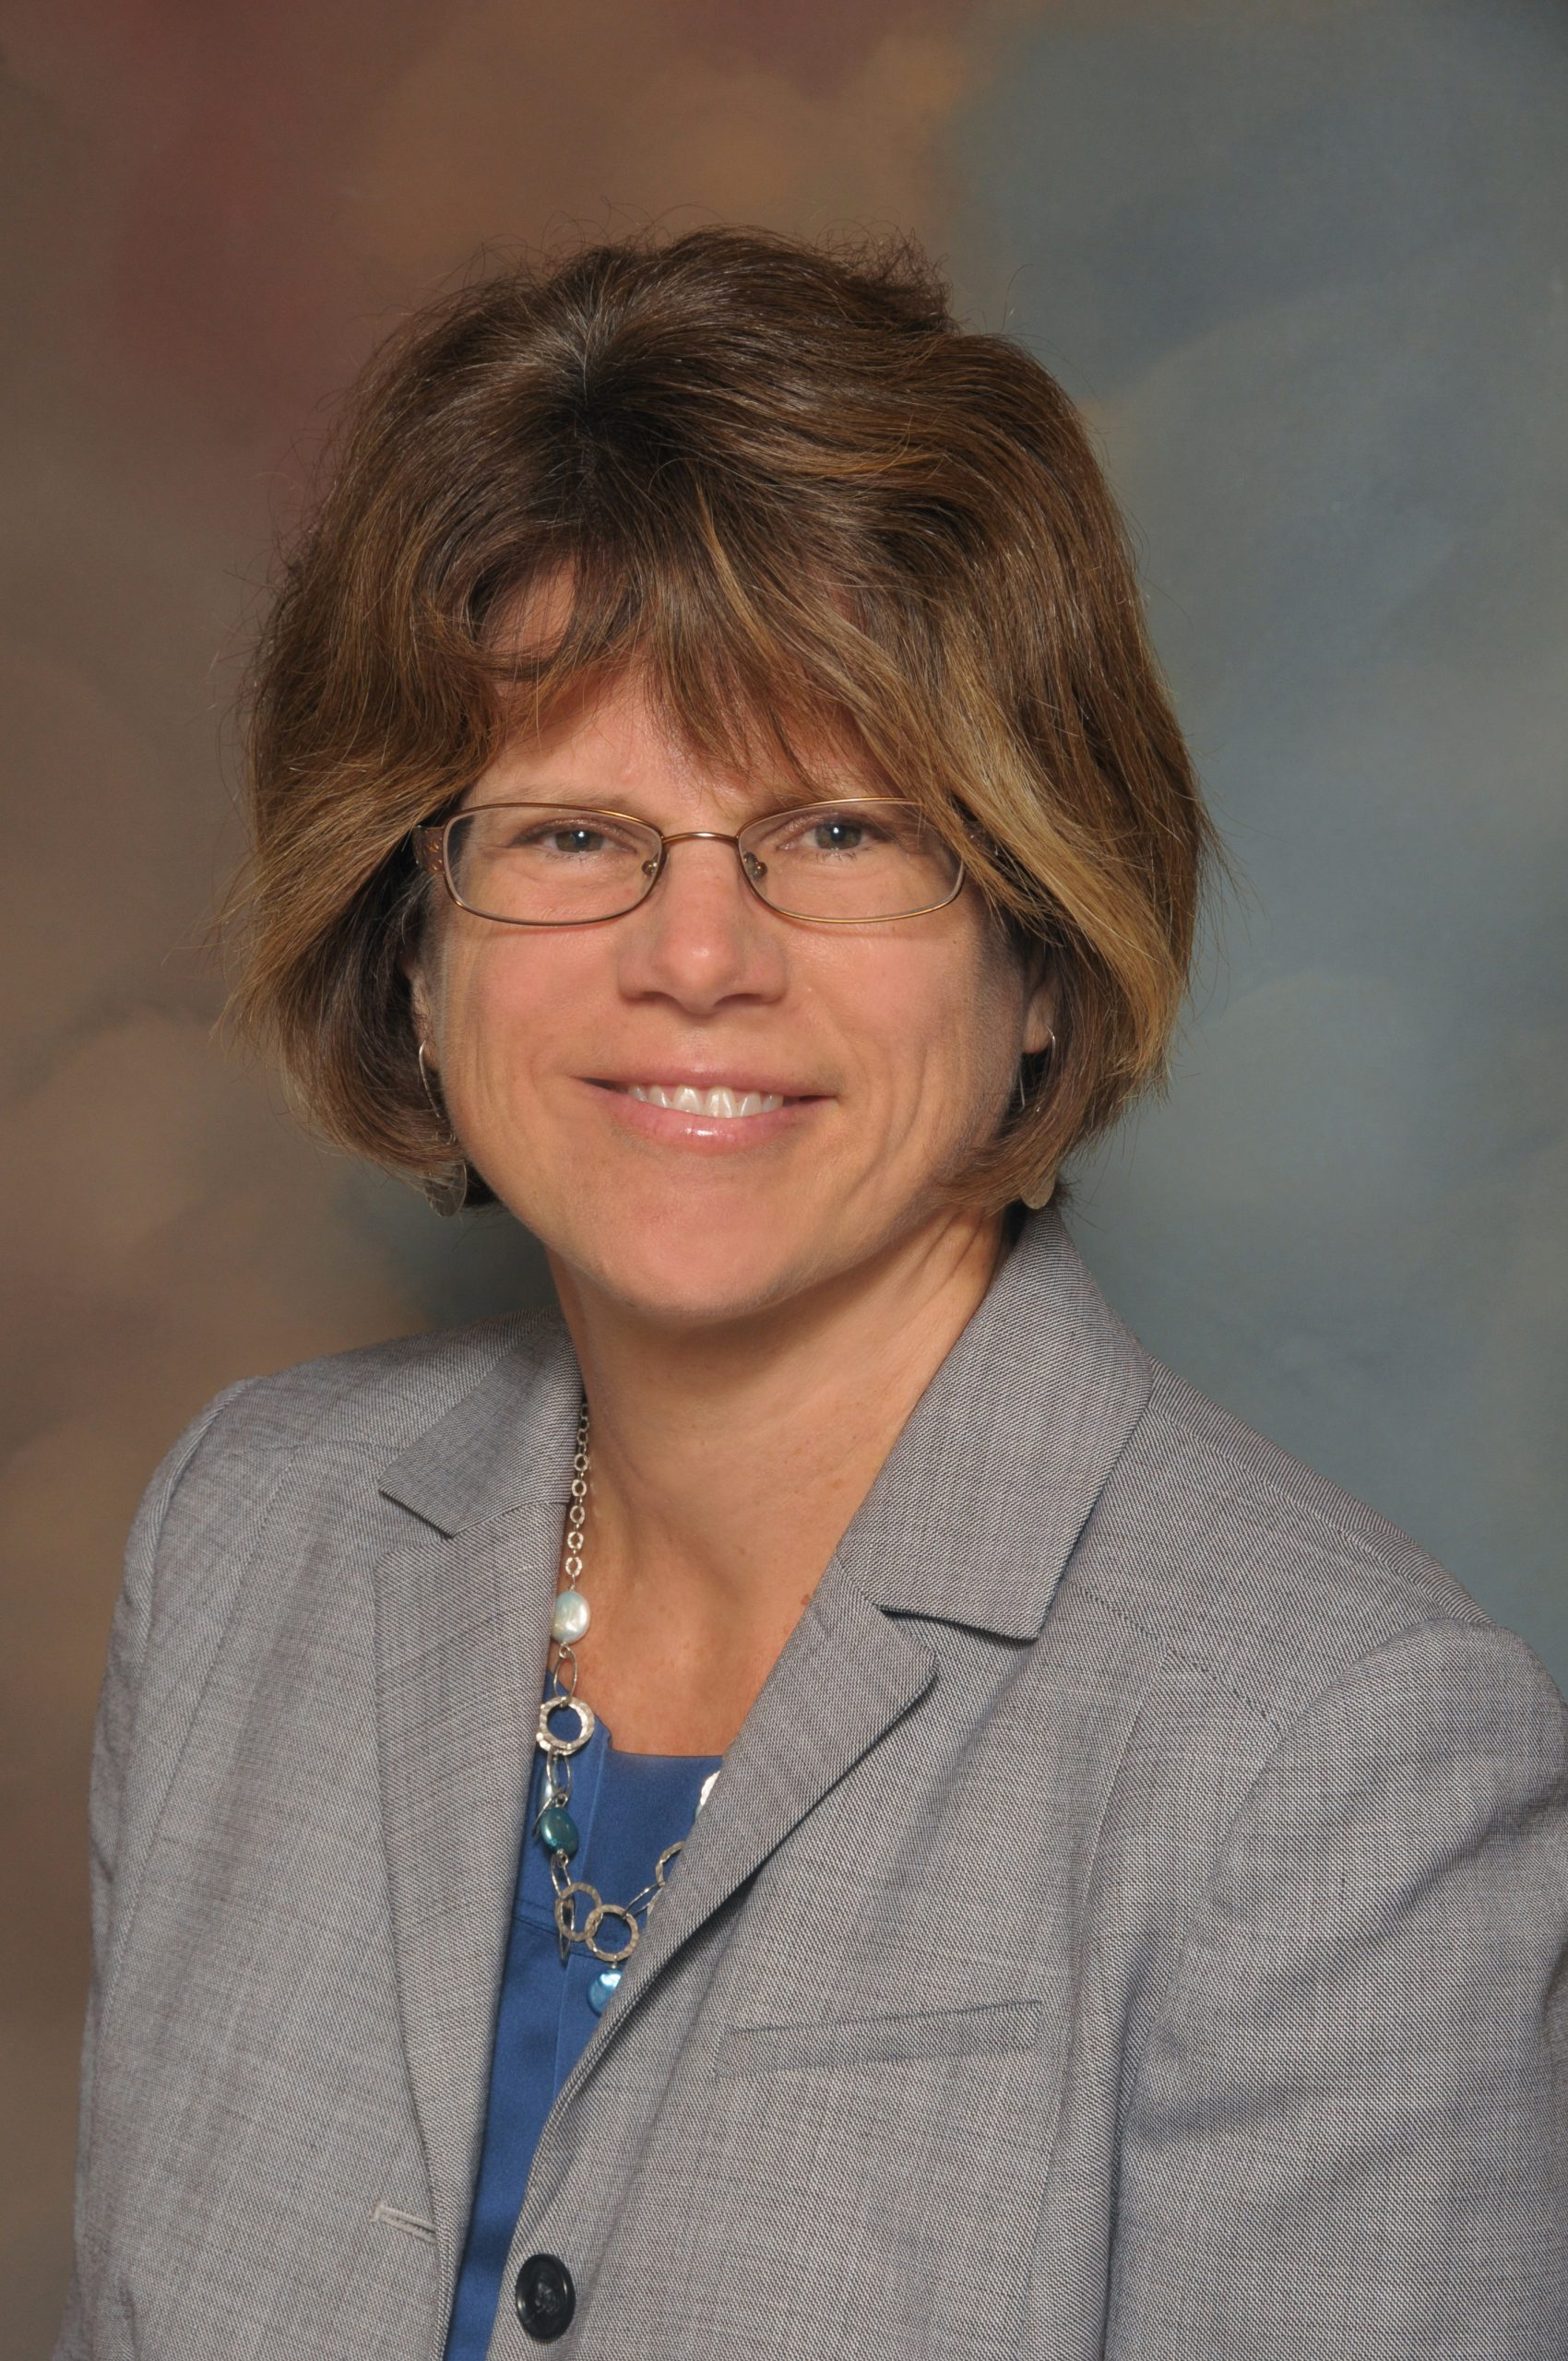 Cynthia Berg named dean of the University of Utah College of Social and Behavioral Science, effective July 1, 2014. Berg is a psychologist focused on developmental psychology and health, particularly the effects of chronic health issues like cancer and diabetes on close relationships.